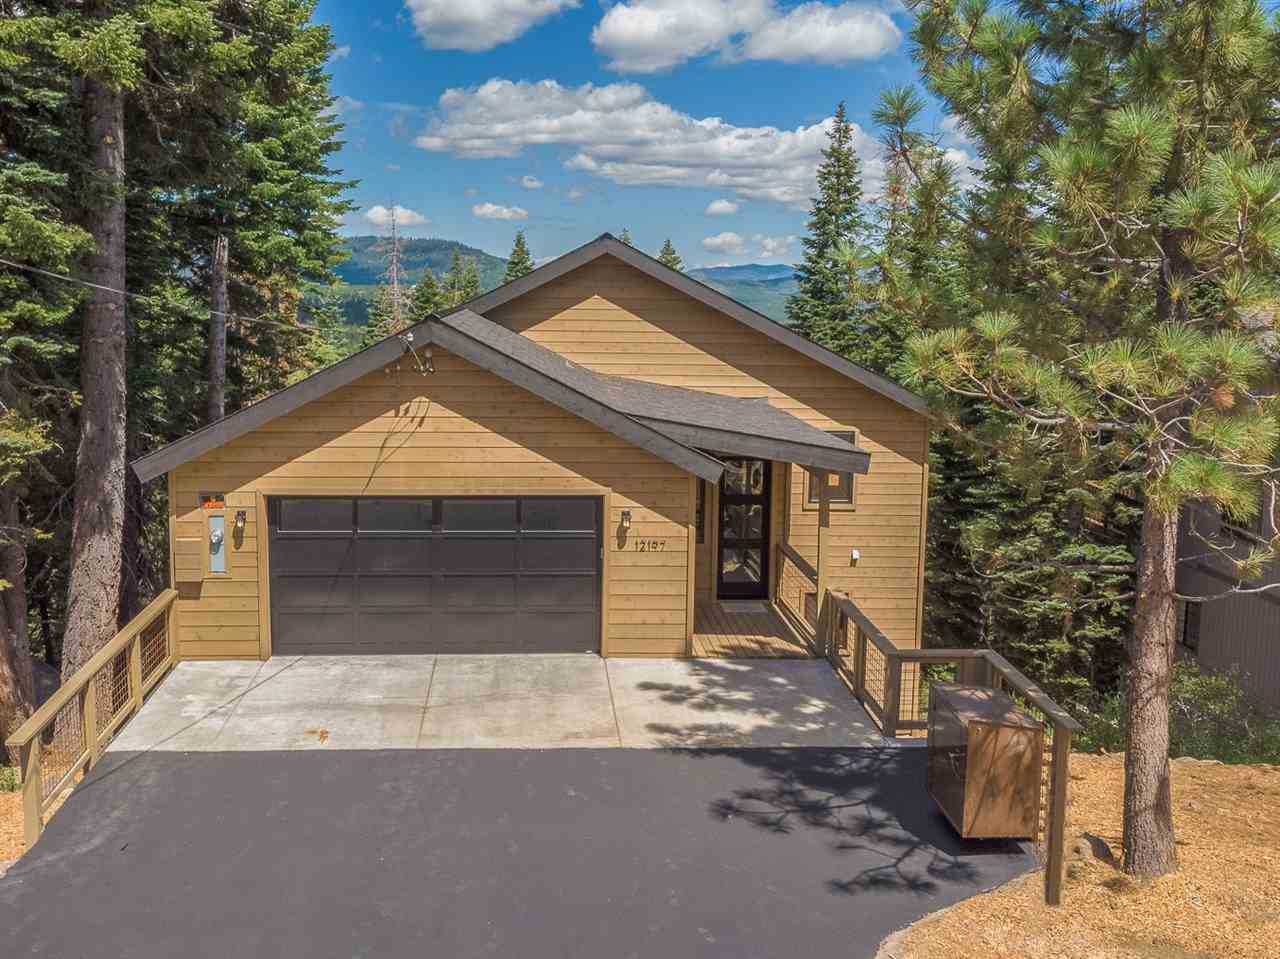 Single Family Homes for Active at 12197 Skislope Way Truckee, California 96161 United States